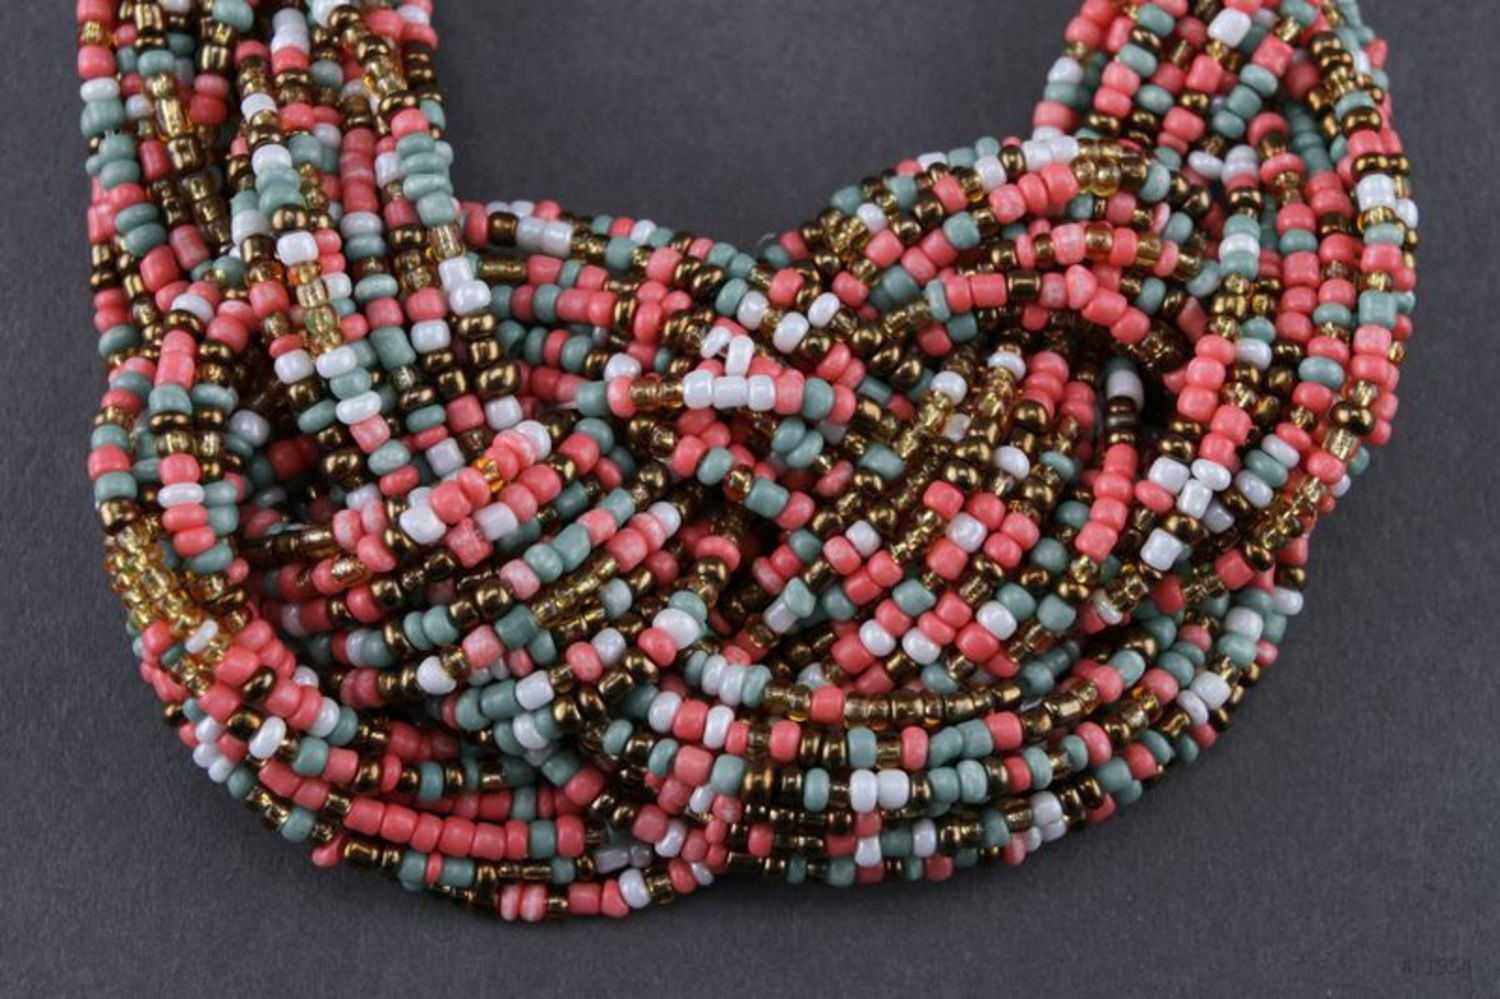 Necklace made of multicoloured beads photo 1